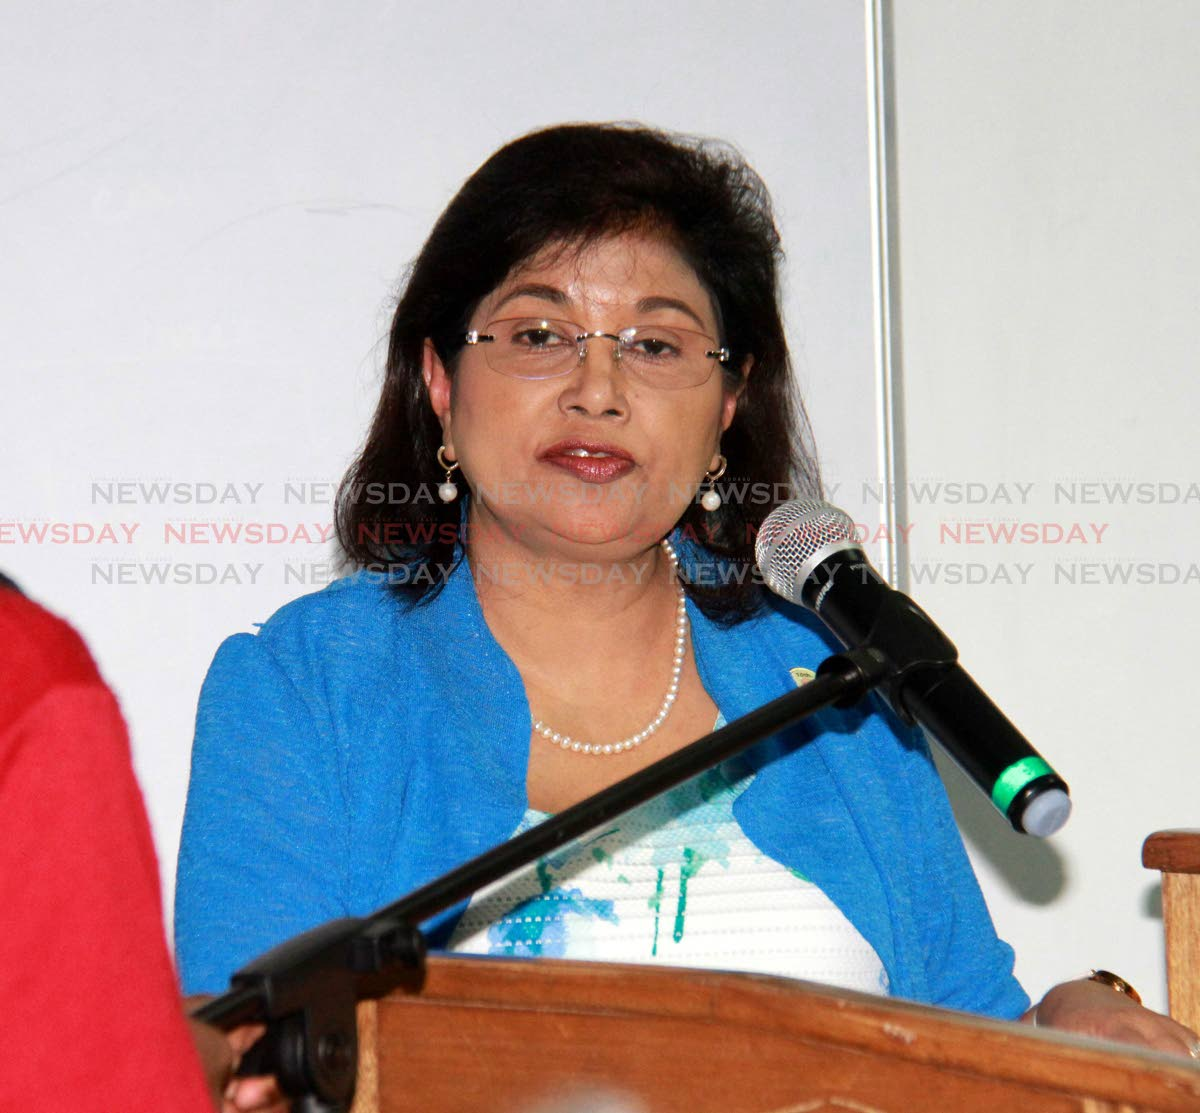 File photo: COP political leader Carolyn Seepersad-Bachan during a Congress of the People Energy Solutions Forum, which took place at Naparima College in San Fernando. PHOTO BY ANIL RAMPERSAD.